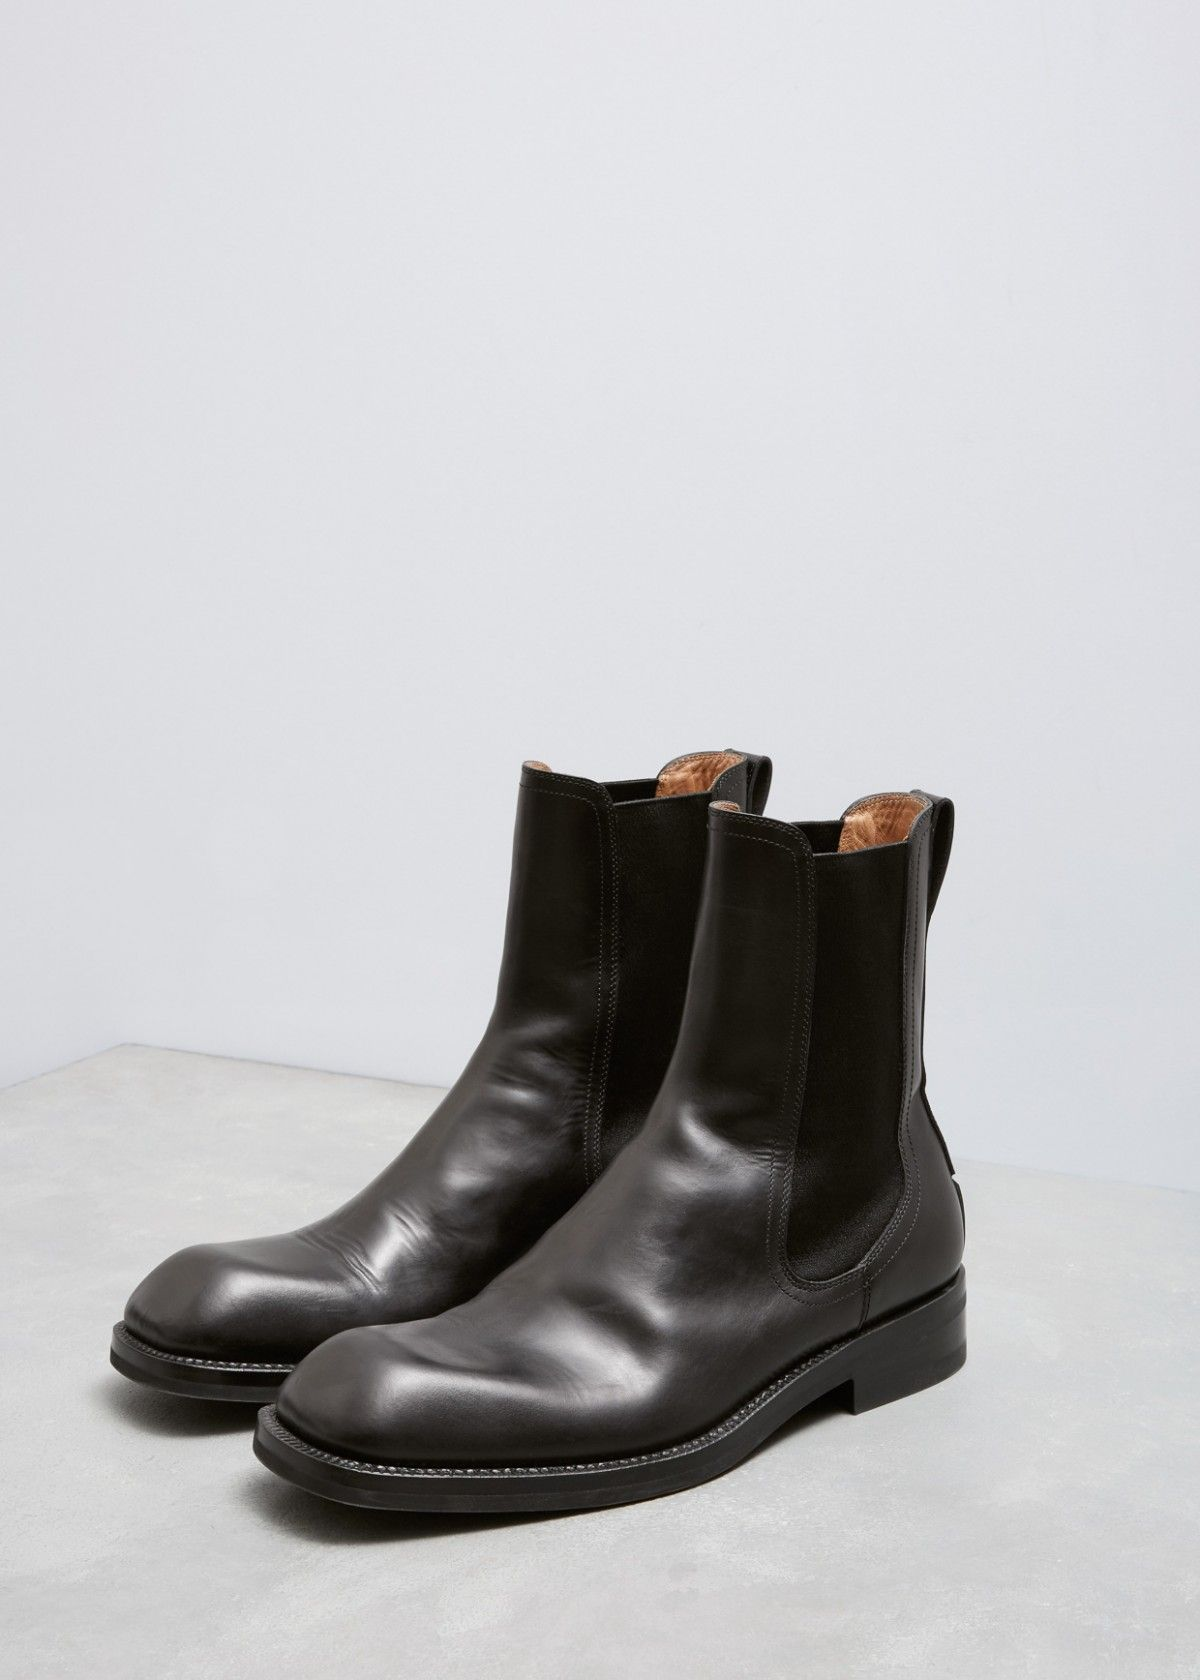 877e6cd3ae1 Chelsea ankle boot in smooth black leather with square toe.